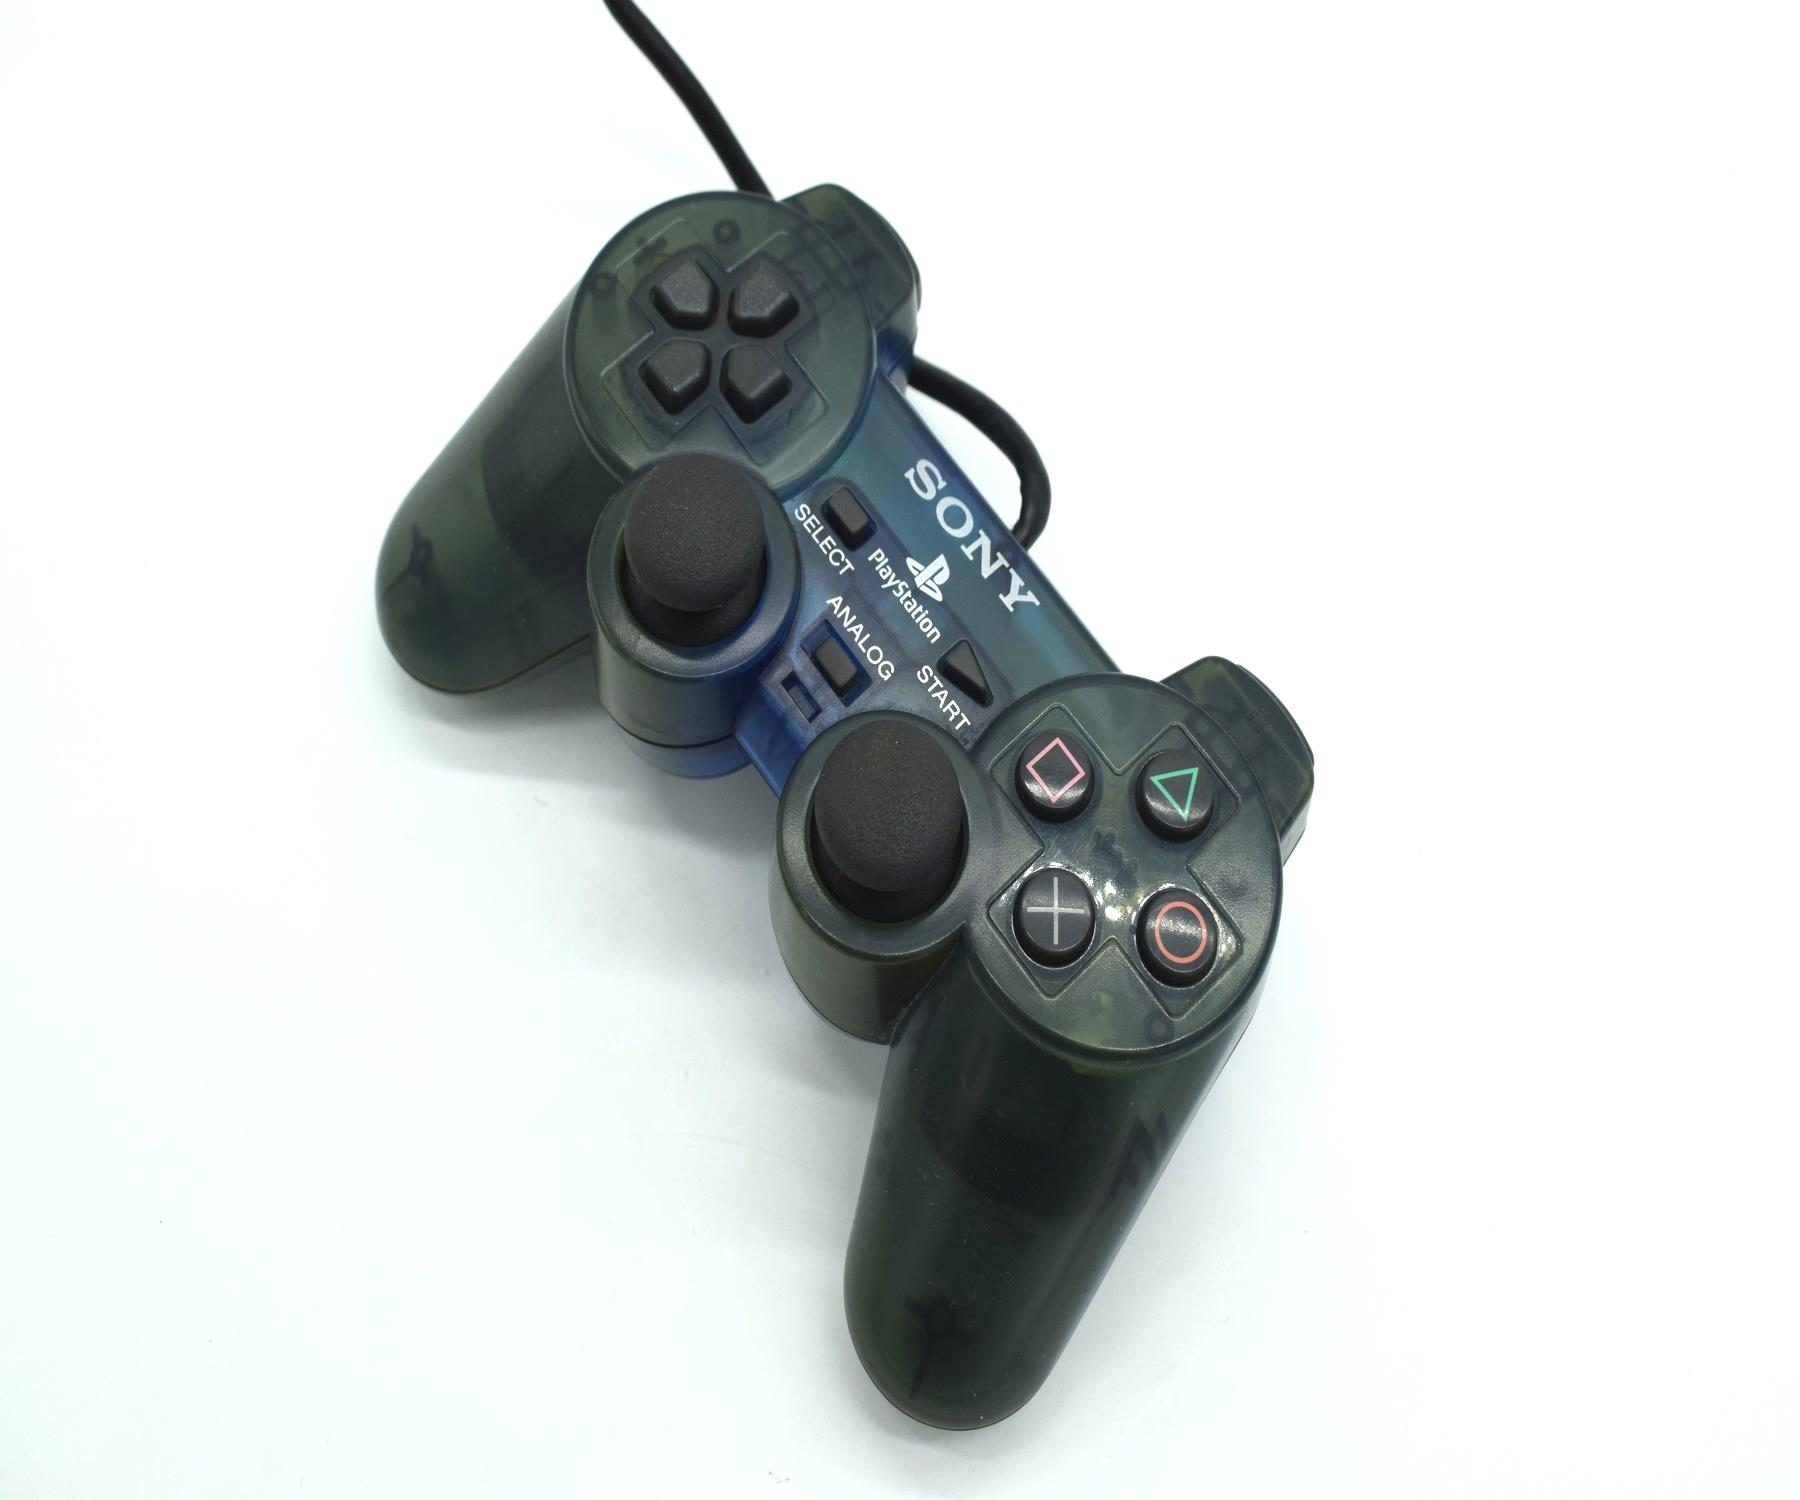 Original-Official-Sony-Dual-Shock-2-PS2-Wired-Controller-Pad-Multiple-Colours thumbnail 11